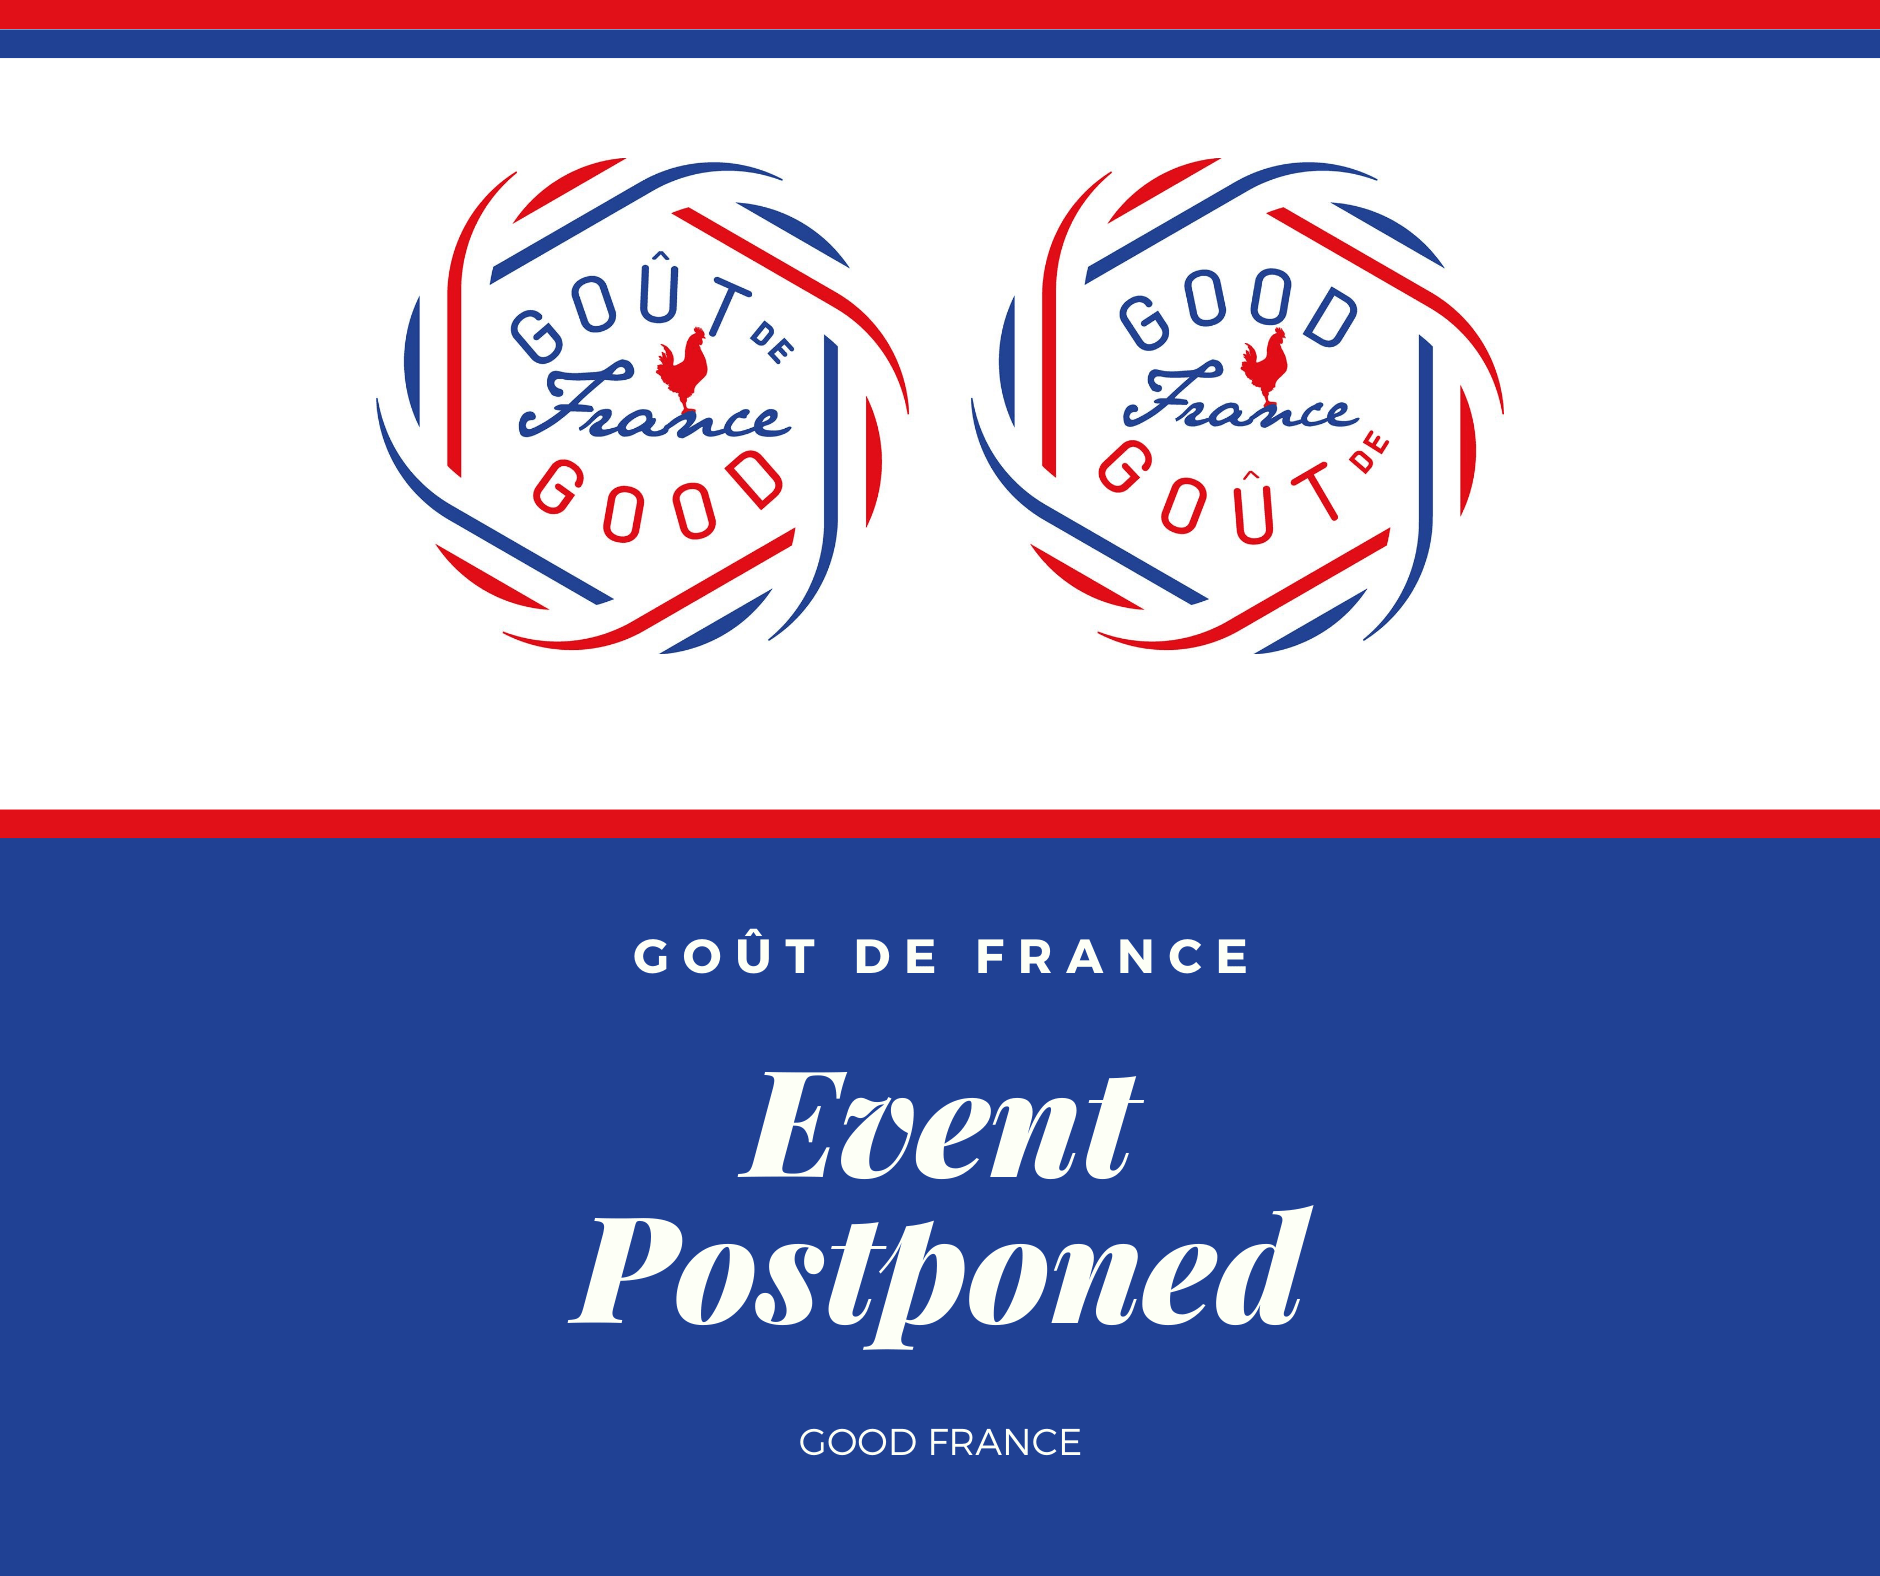 Good France/ Goût de France event Postponed